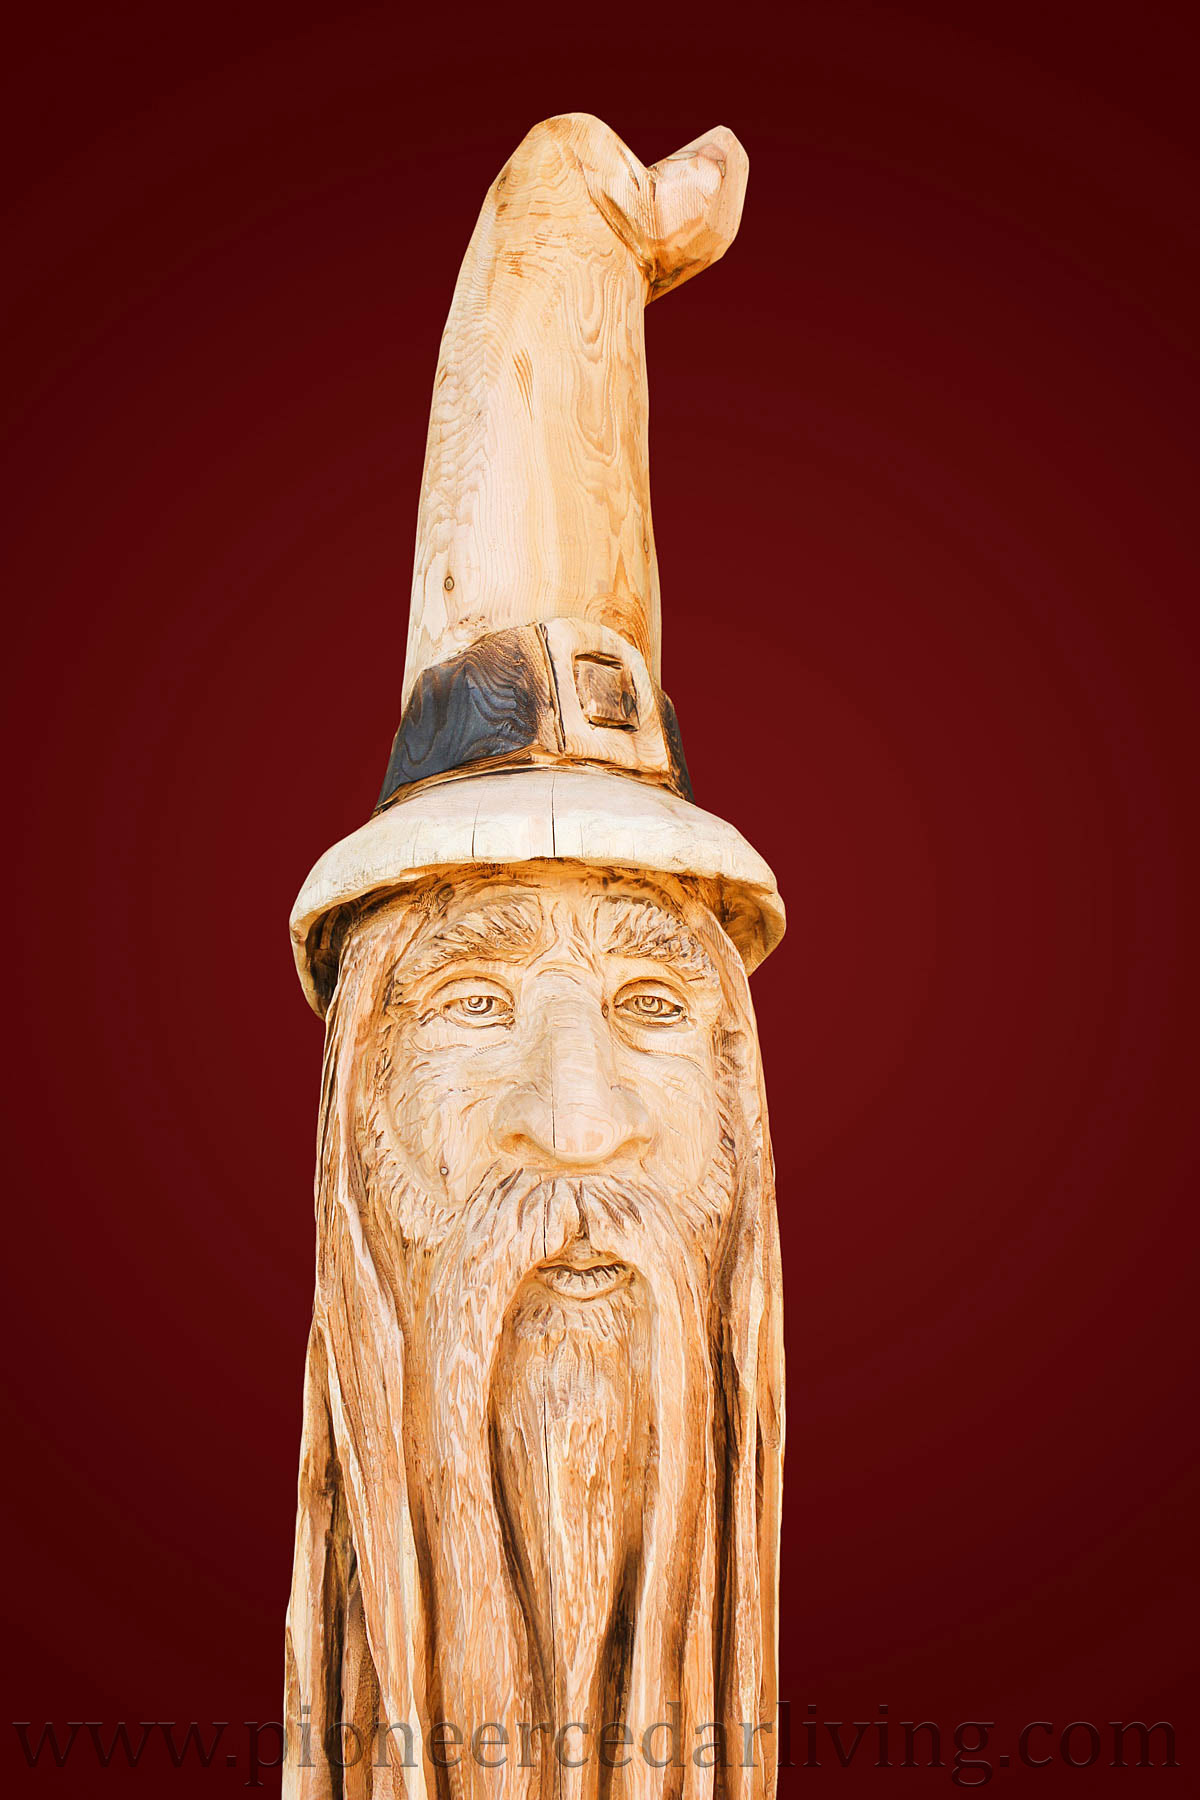 Wizard chainsaw carving pioneer cedar living